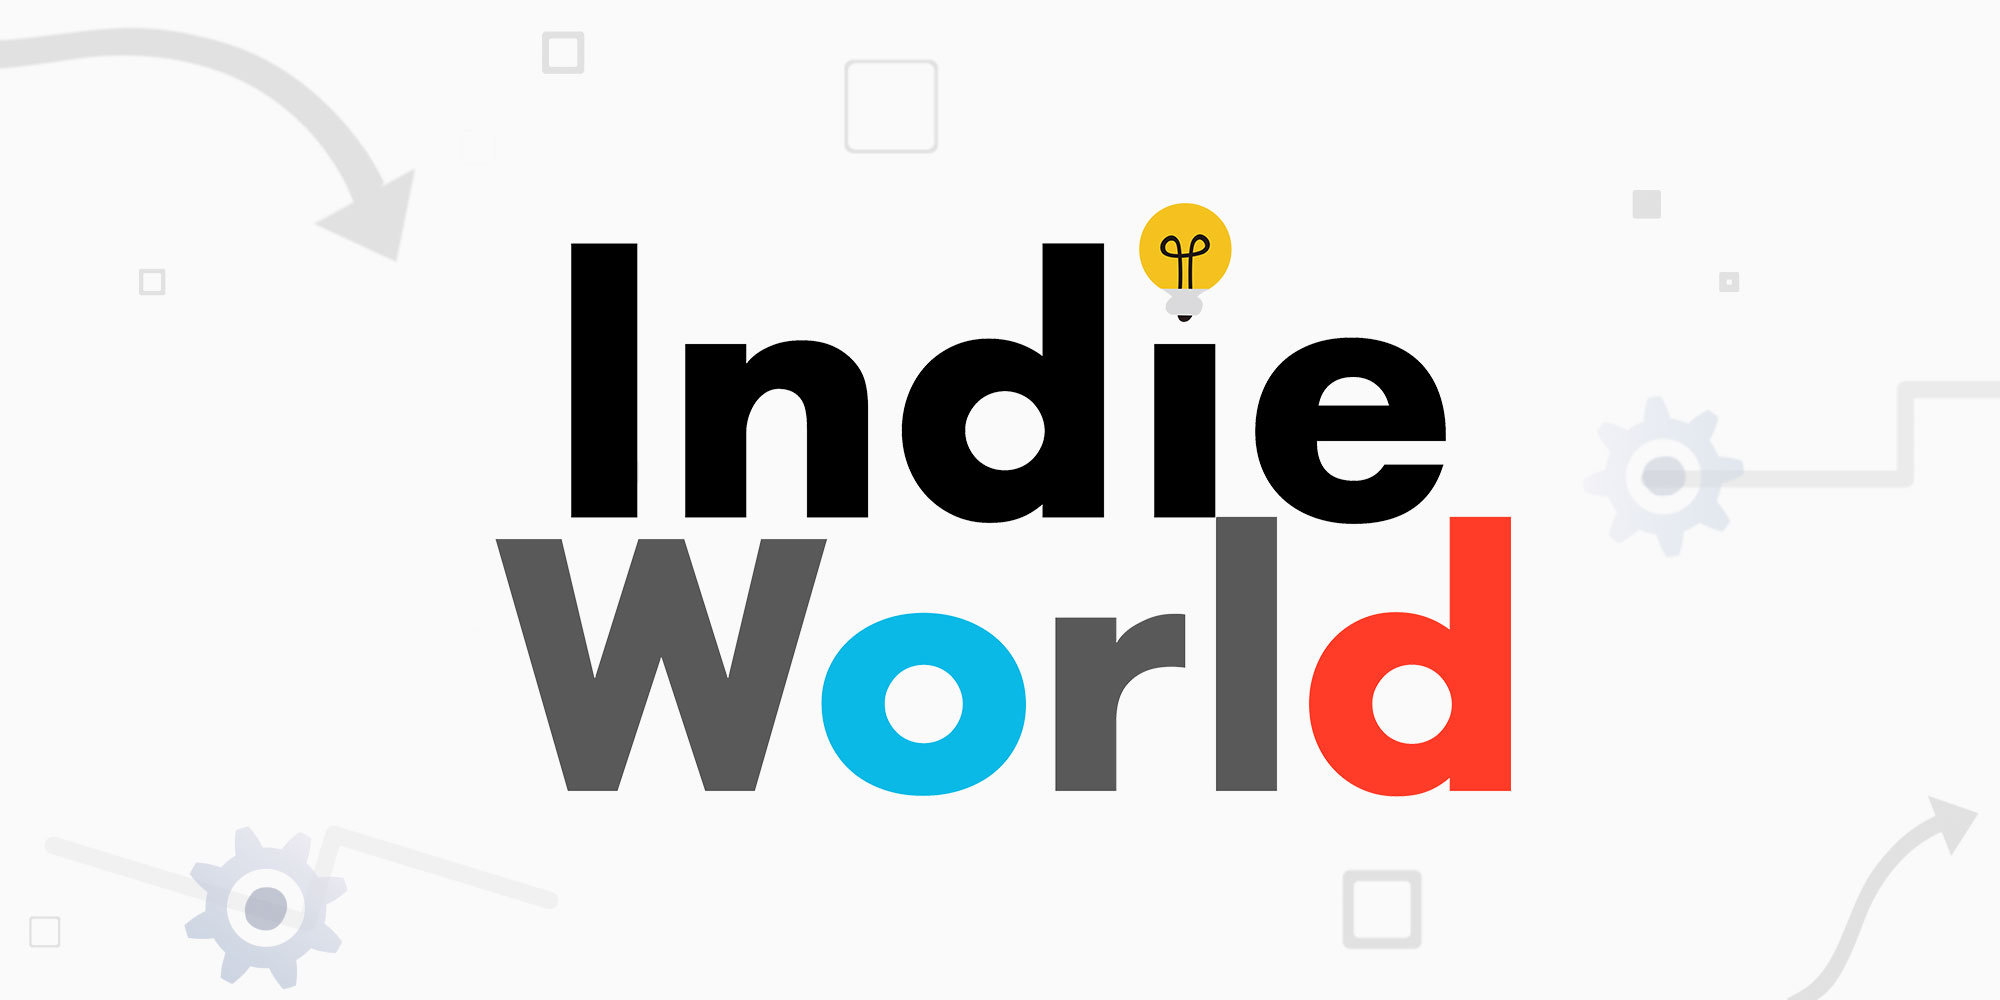 Nintendo Switch: All new games from the Indie World